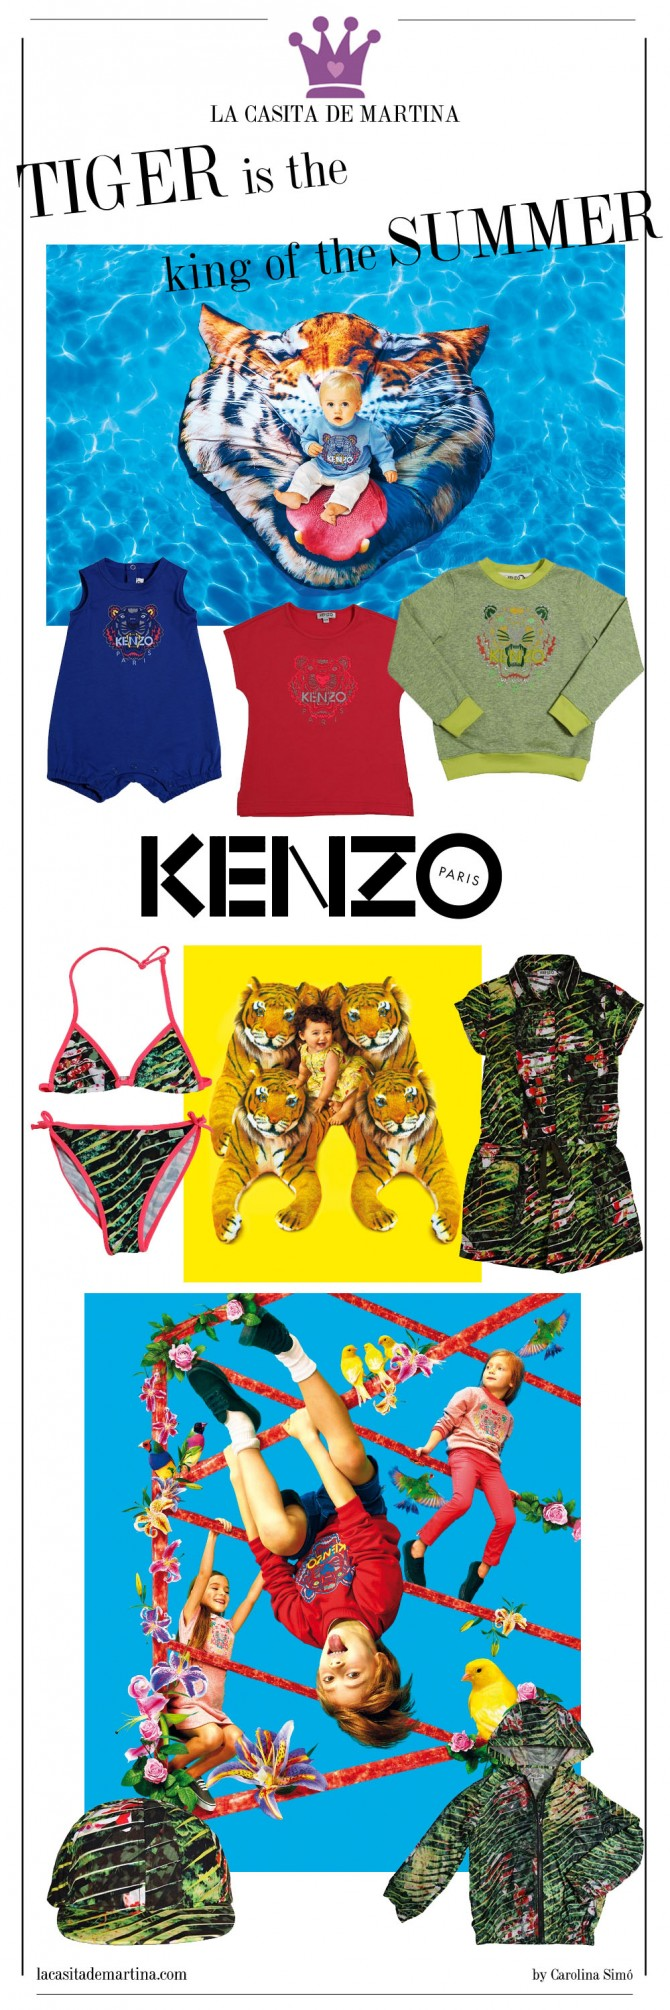 Kenzo Kids, Moda Infantil, Blog Moda Infantil,  La casita de Martina, Fashion Kids